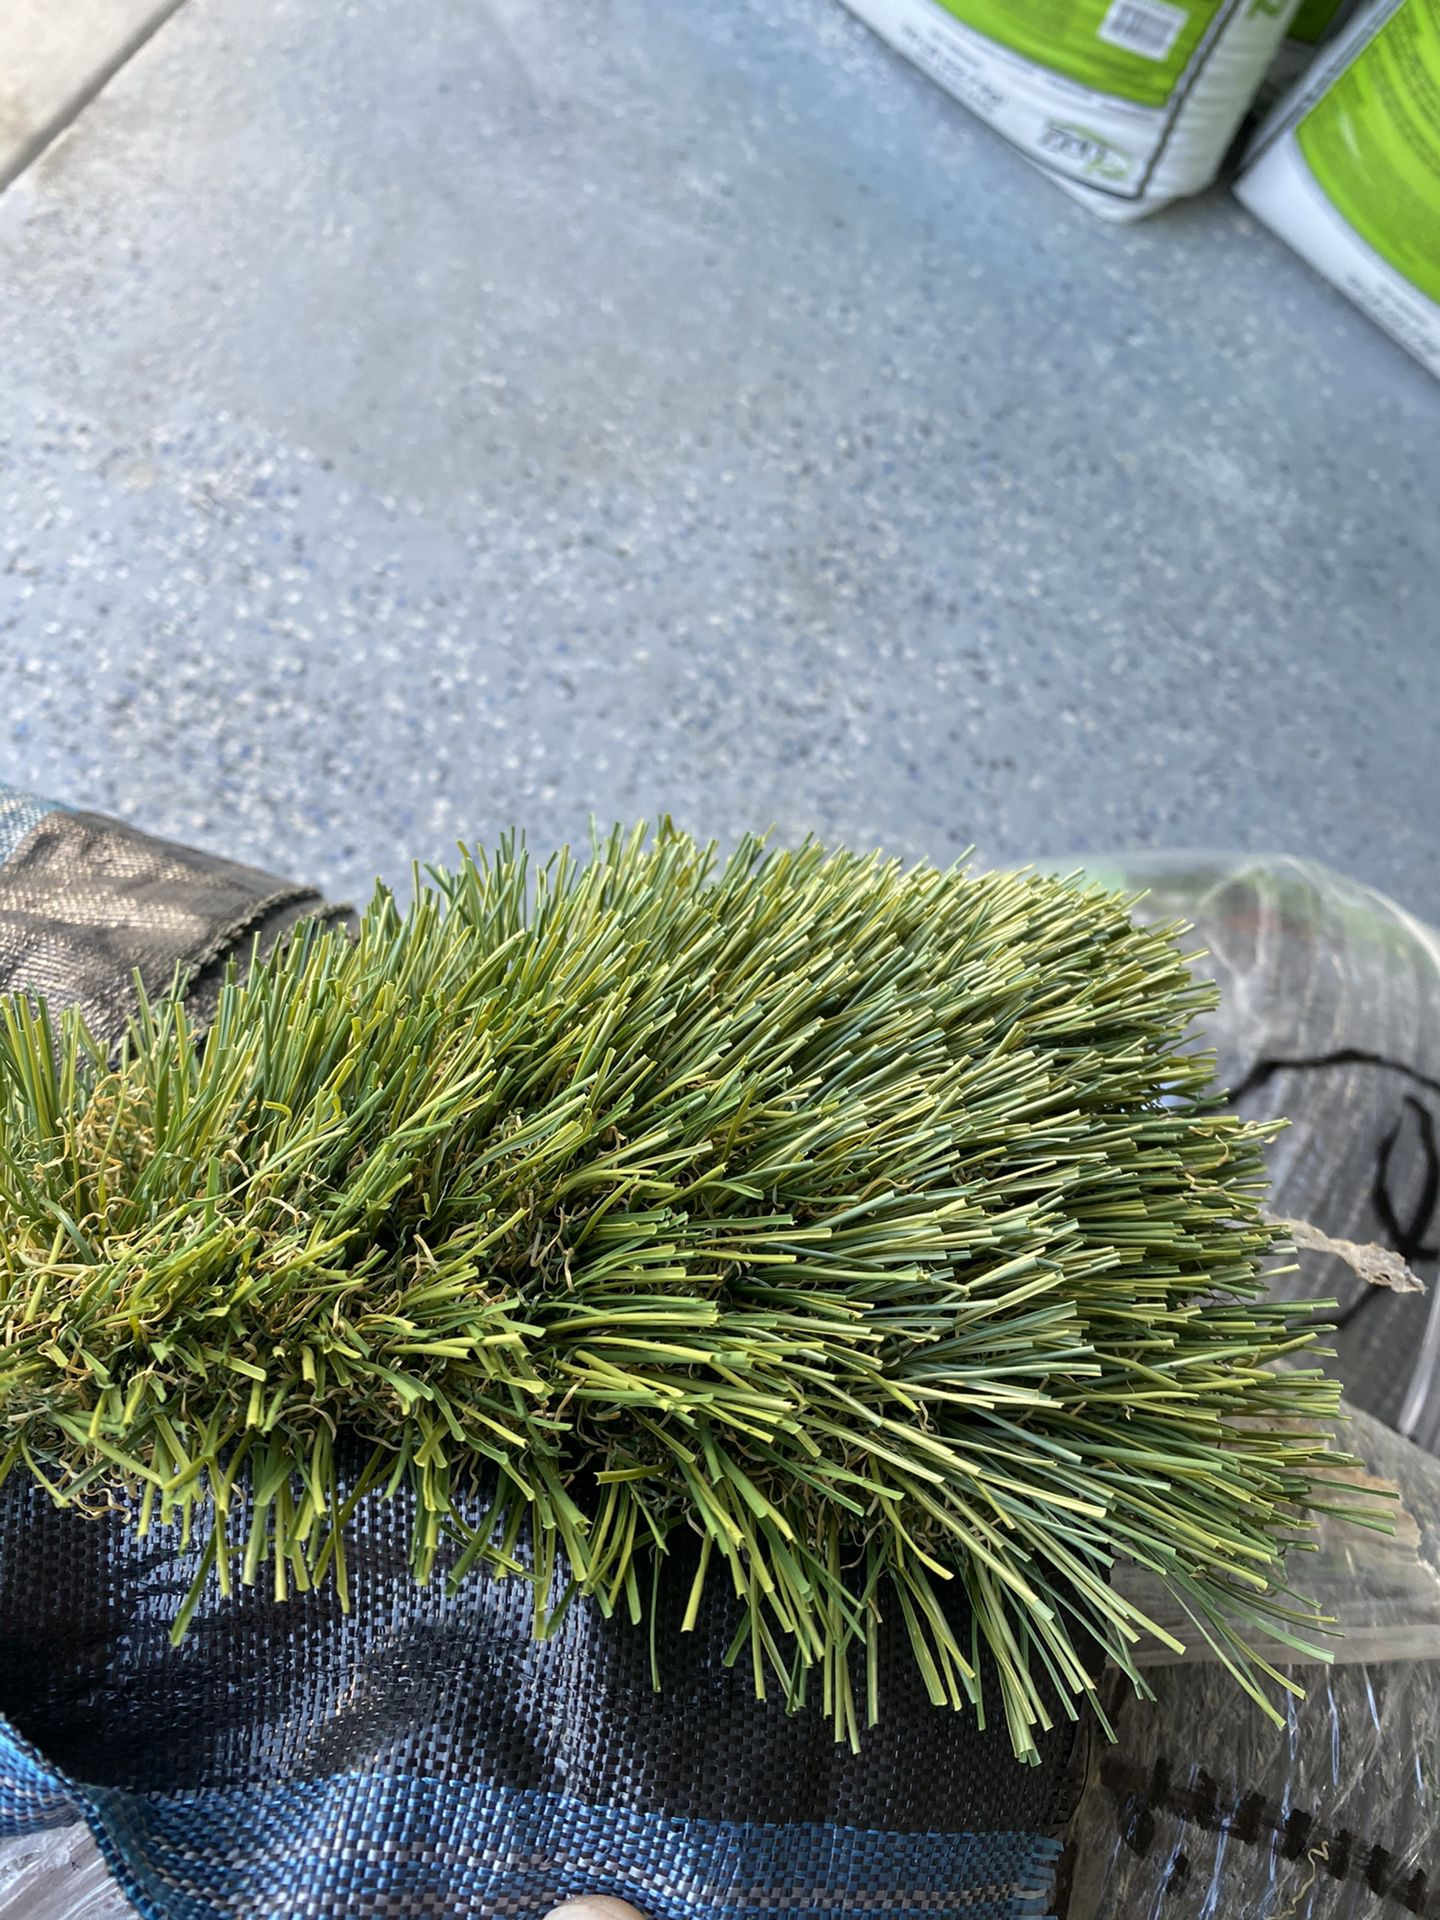 Artificial turf 15x10 size brand new grass $300 price firm 👈🏿👈🏿👈🏿👈🏿